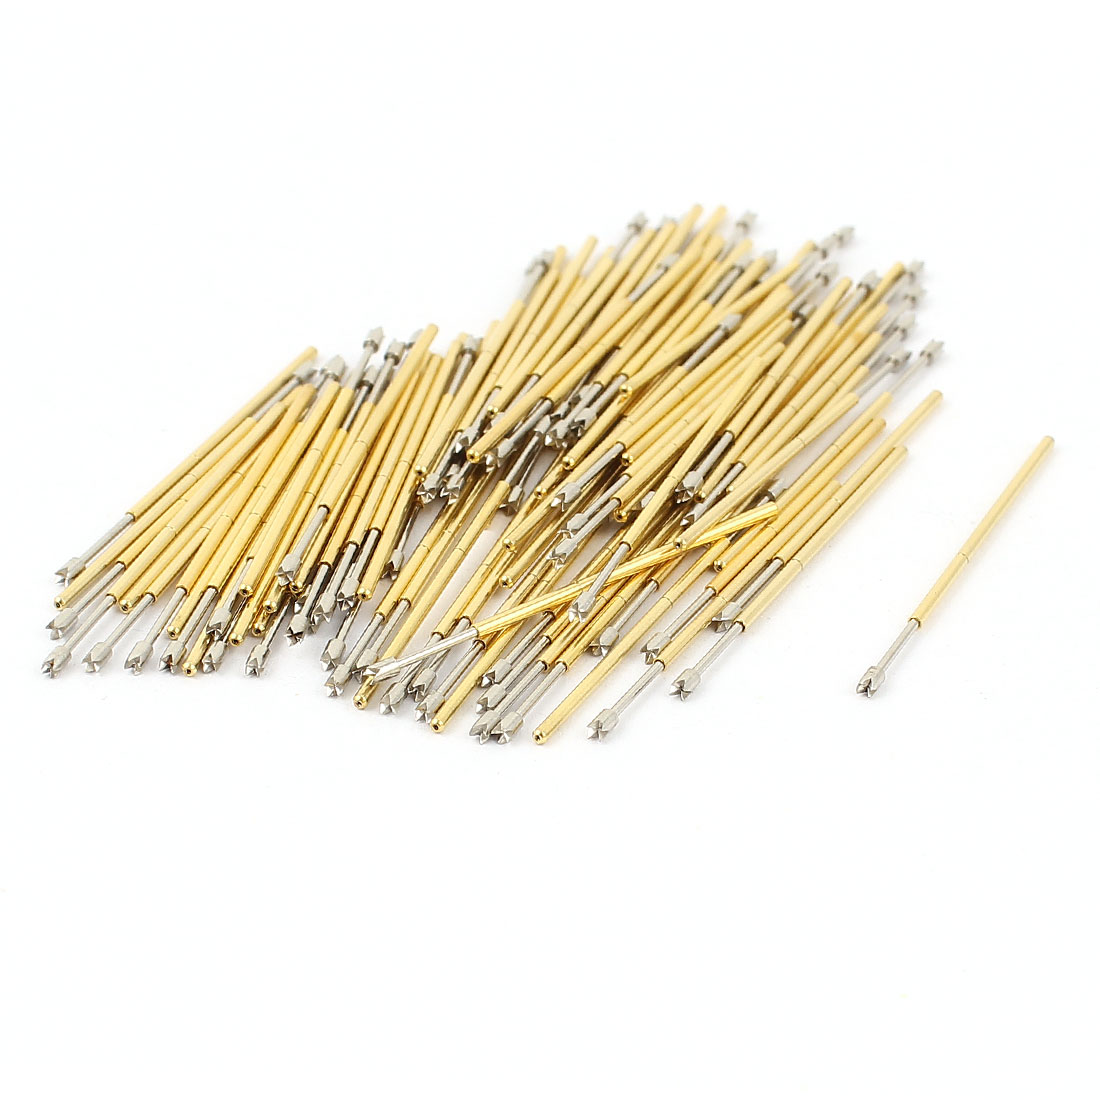 100 Pcs PL75-Q2 1.3mm 4-Point Crown Tip Spring Testing Probes Pin